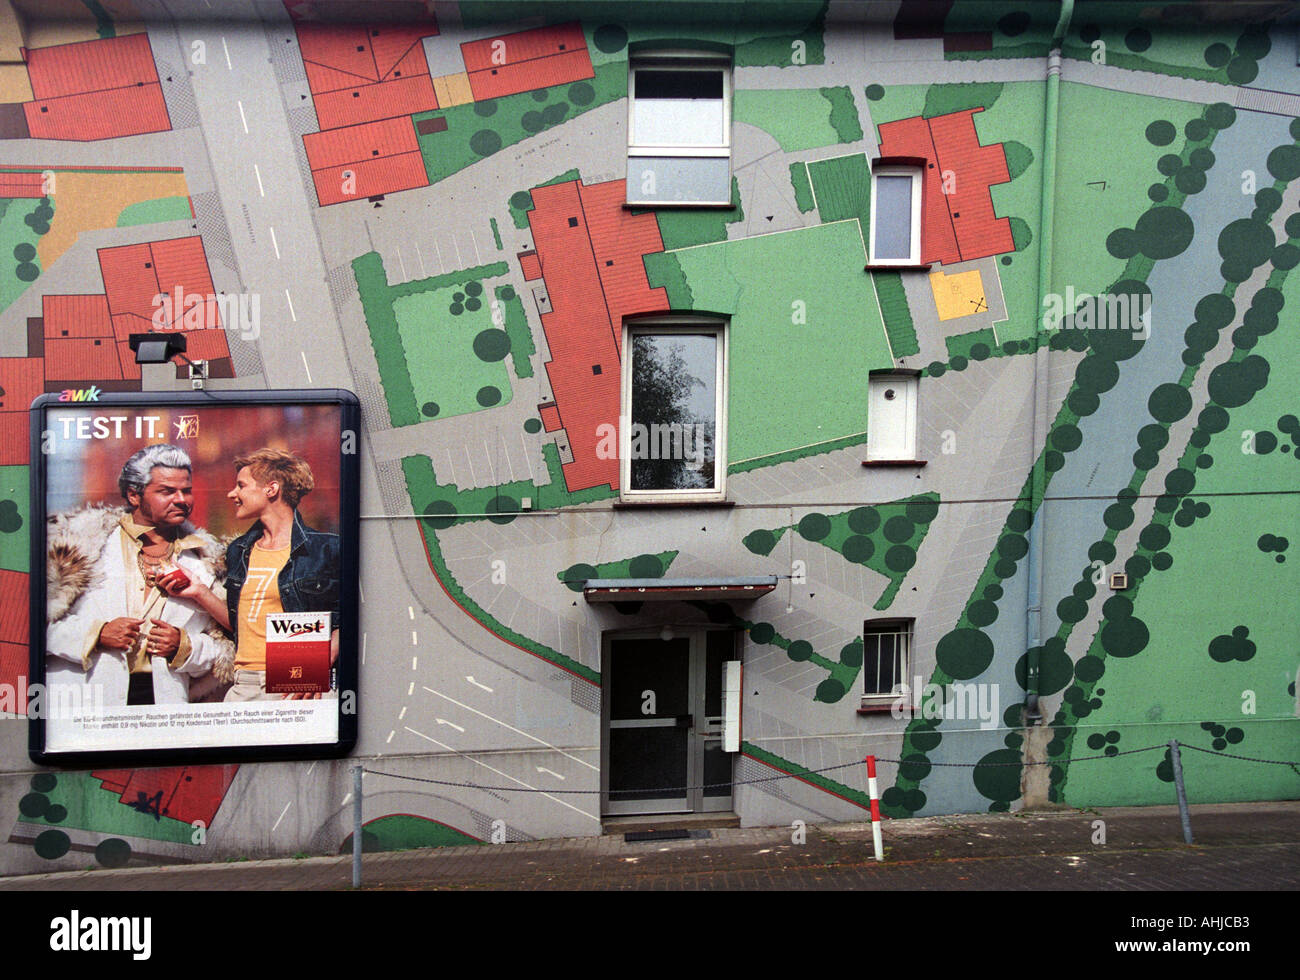 Cigarette advertising in Germany - Stock Image